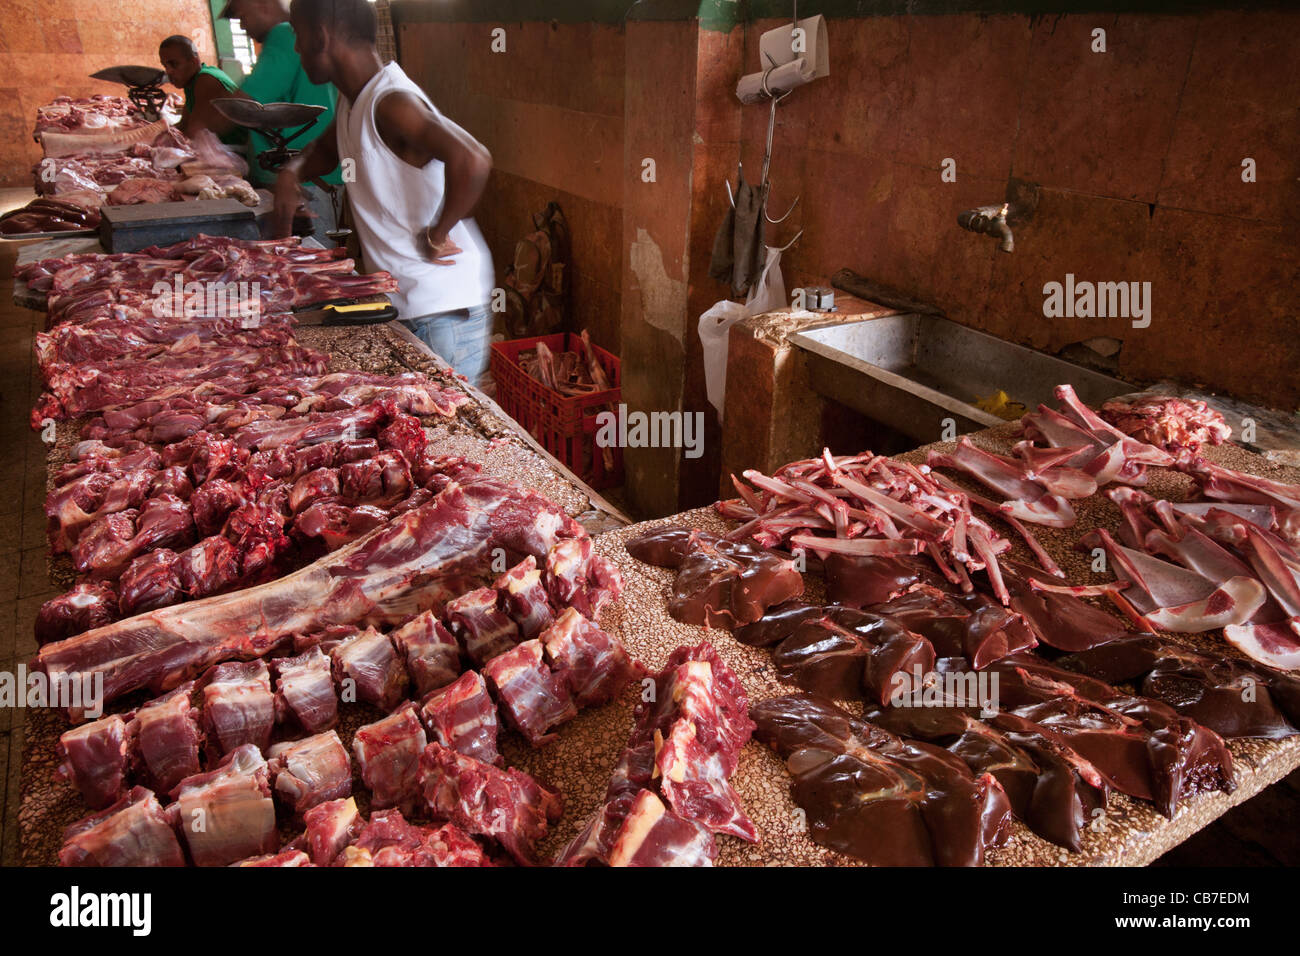 meat market stock images - photo #6